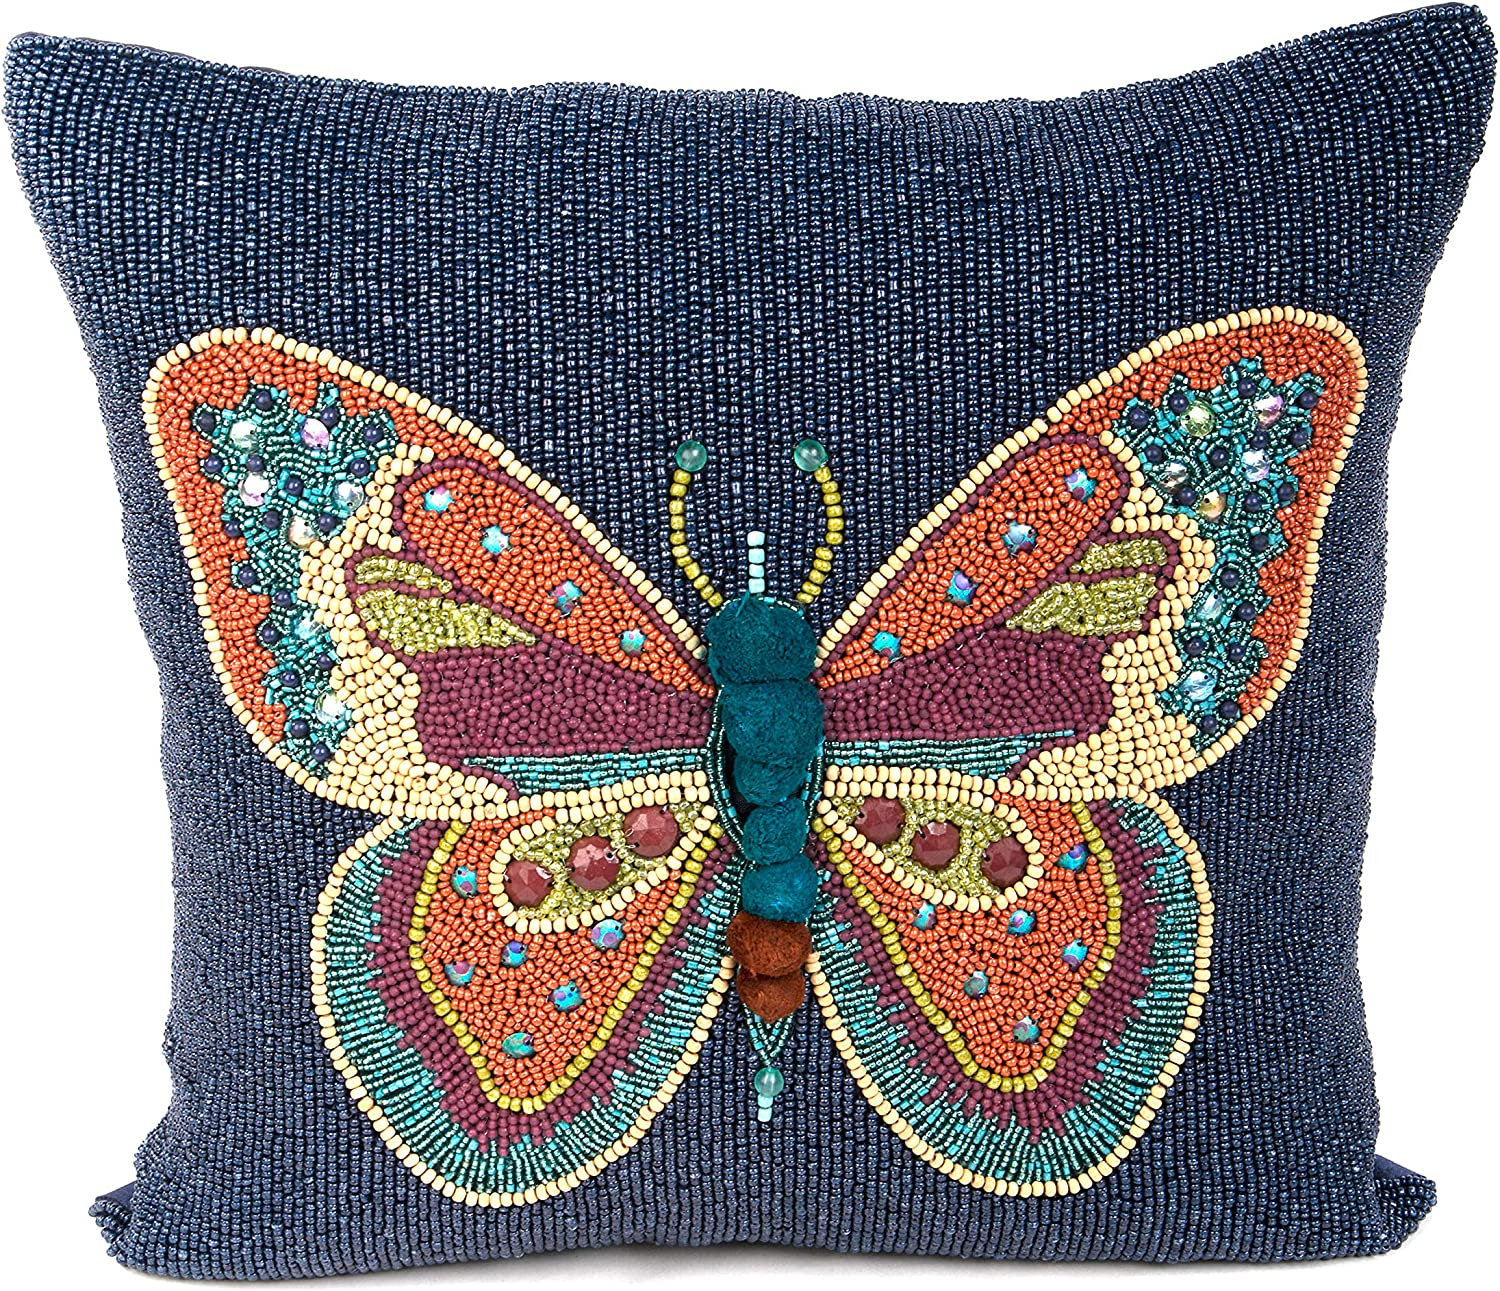 MacKenzie-Childs Boheme Butterfly Pillow, Decorative Throw Pillow Cushions, 16 Inches x 16 Inches